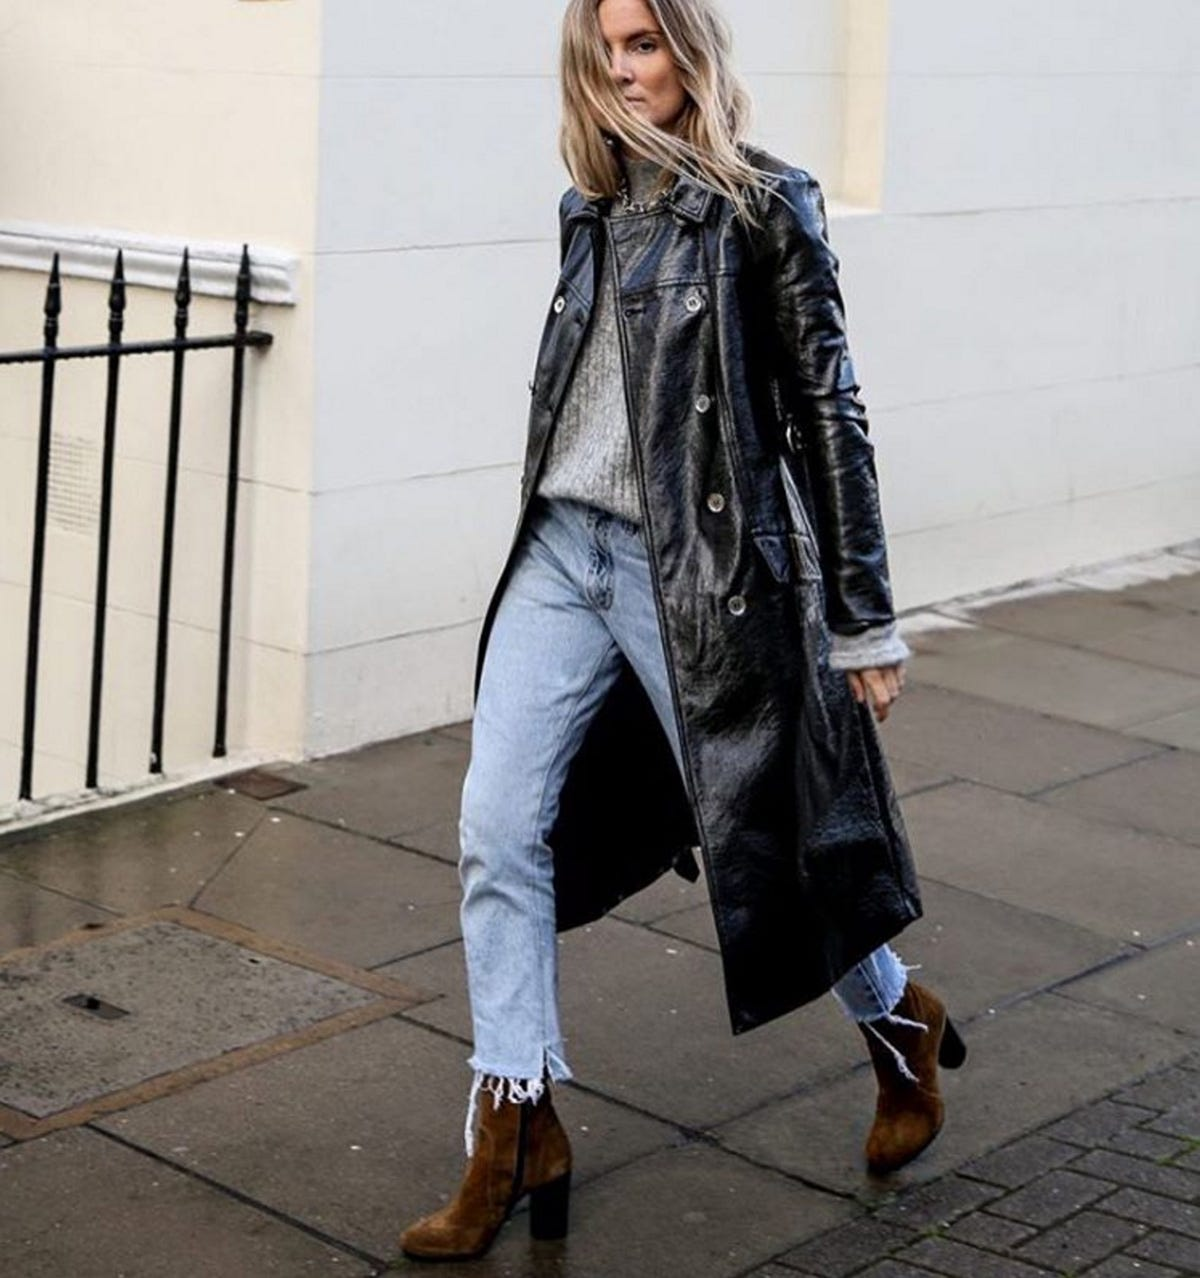 2019 year style- How to clothes wear in winter